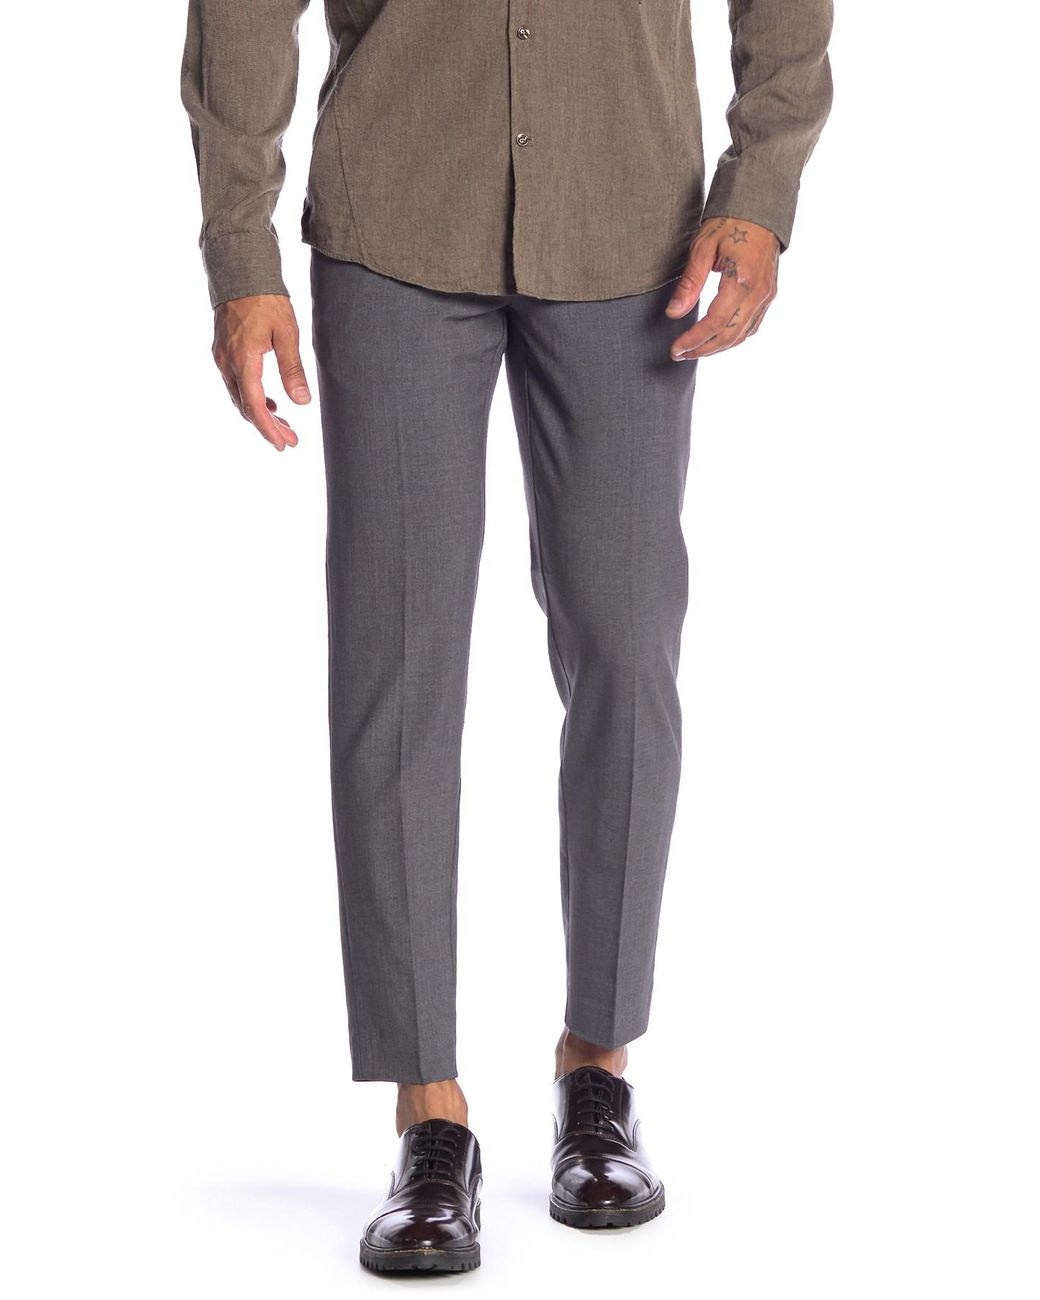 74112afc030a0 Lyst - Lindbergh Sharkskin Ankle Grazer Pants in Gray for Men